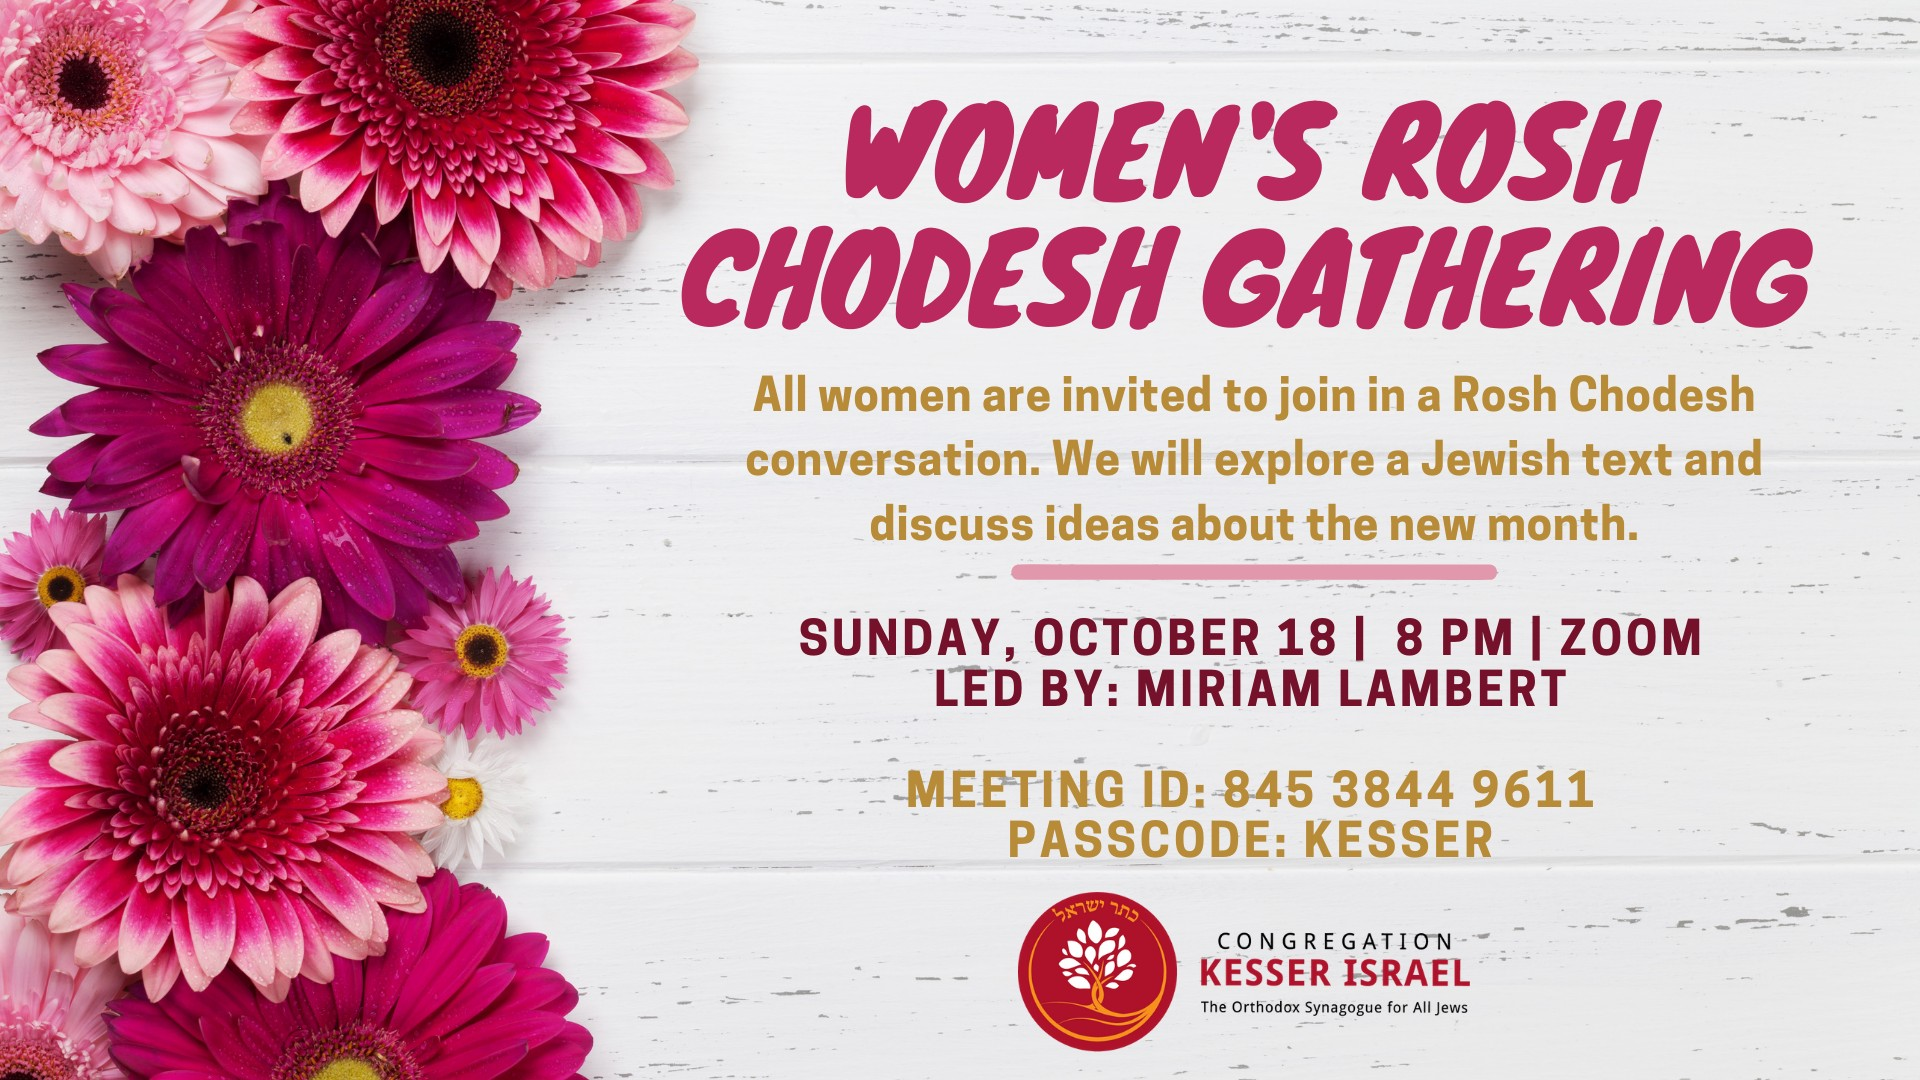 Banner Image for Women's Rosh Chodesh Gathering